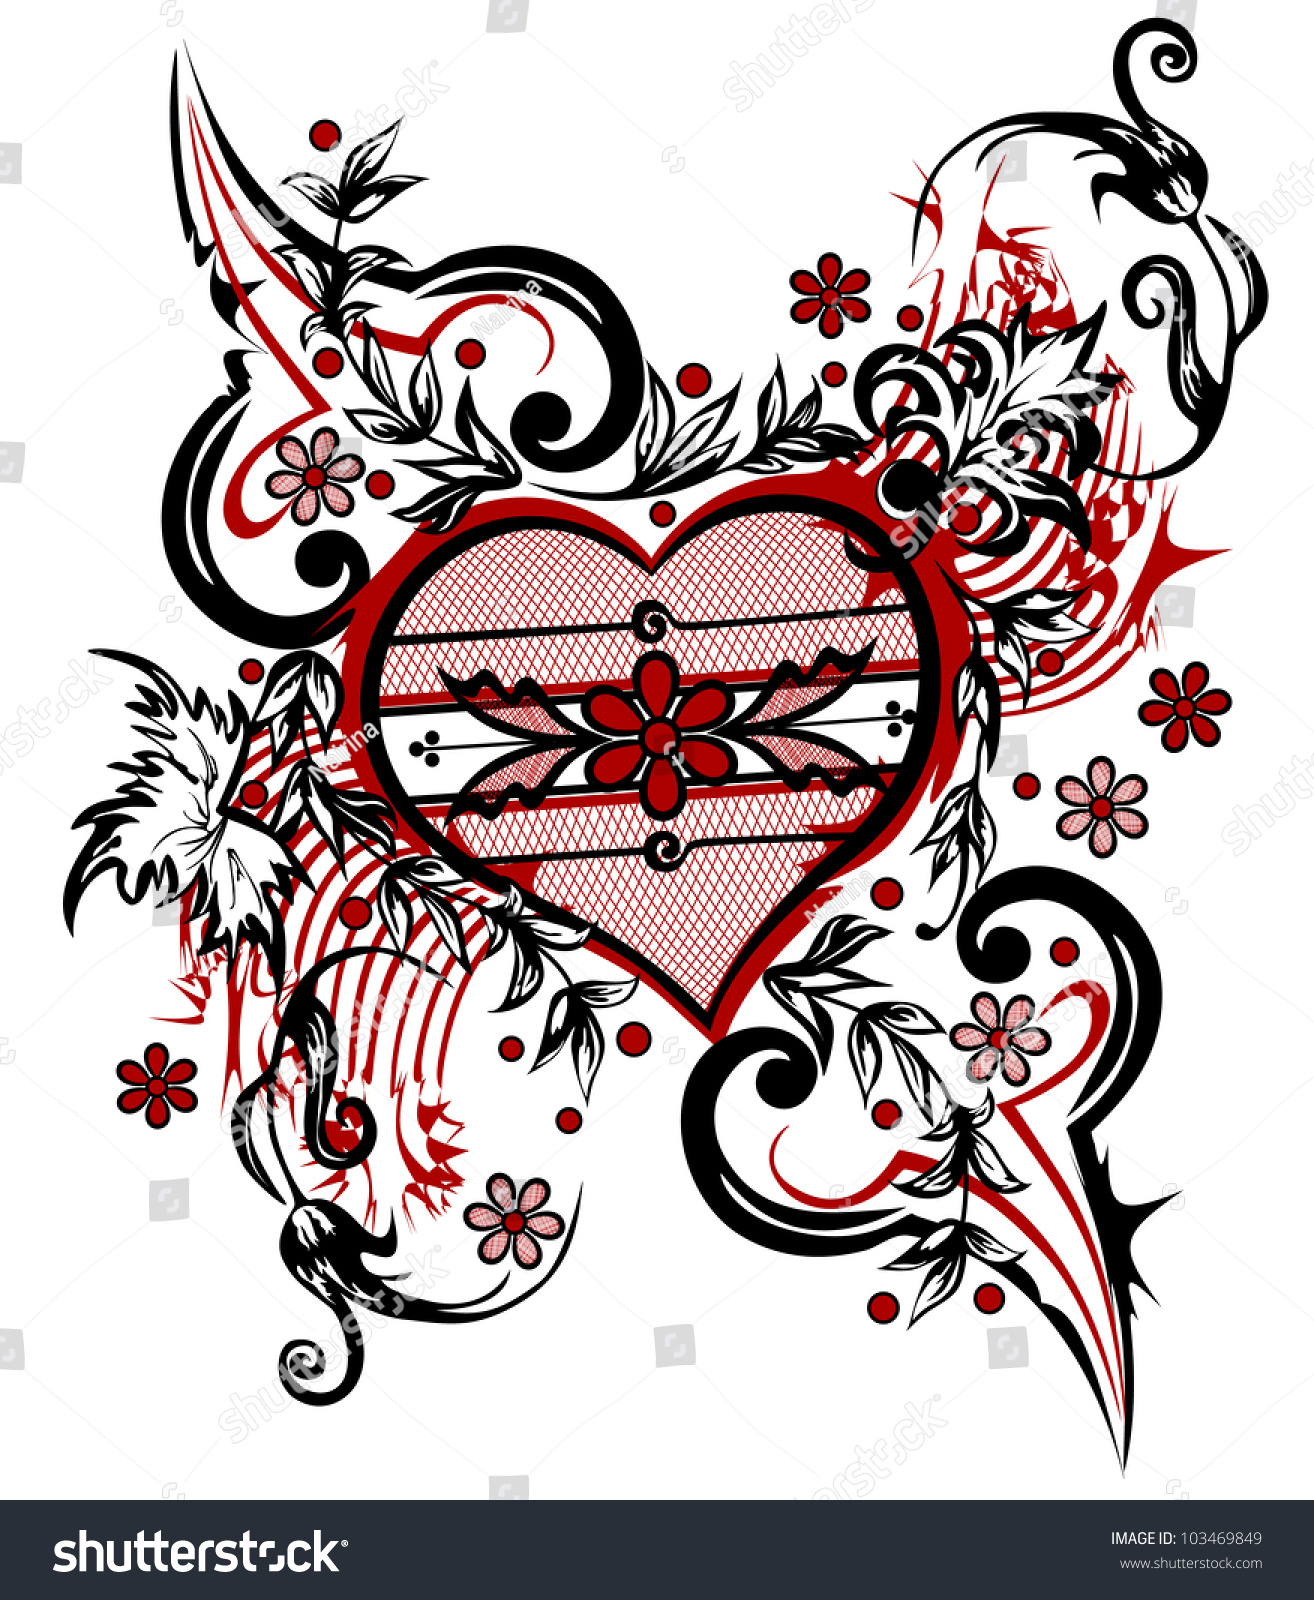 Abstract Drawing Heart Valentine Background Valentines Stock Vector